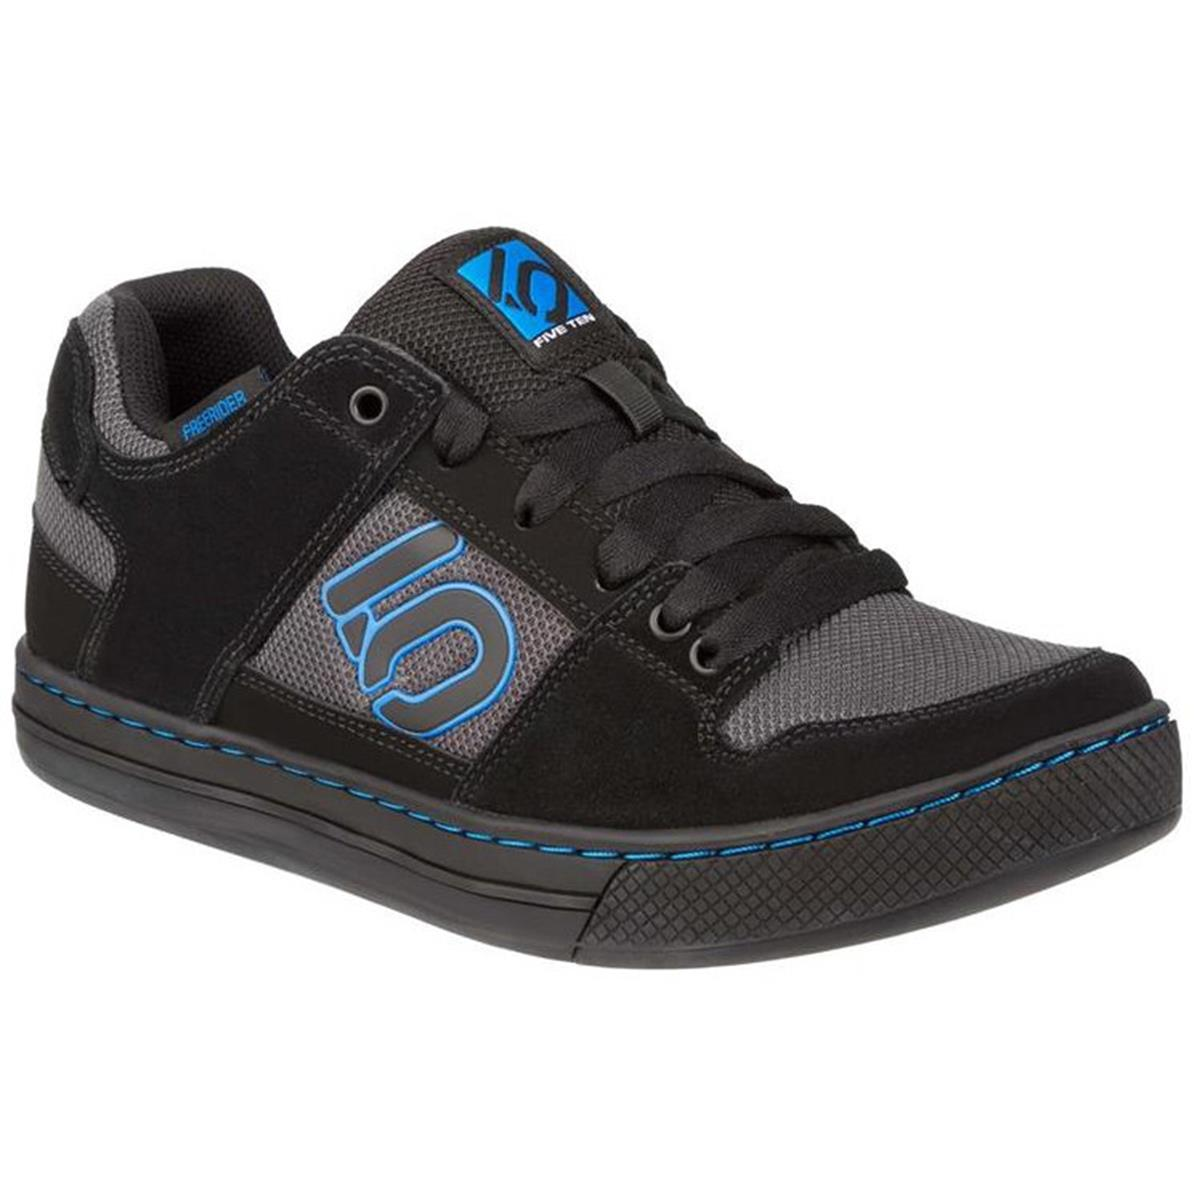 Five Ten MTB-Schuhe Freerider Night Grey/Core Black/Shock Blue